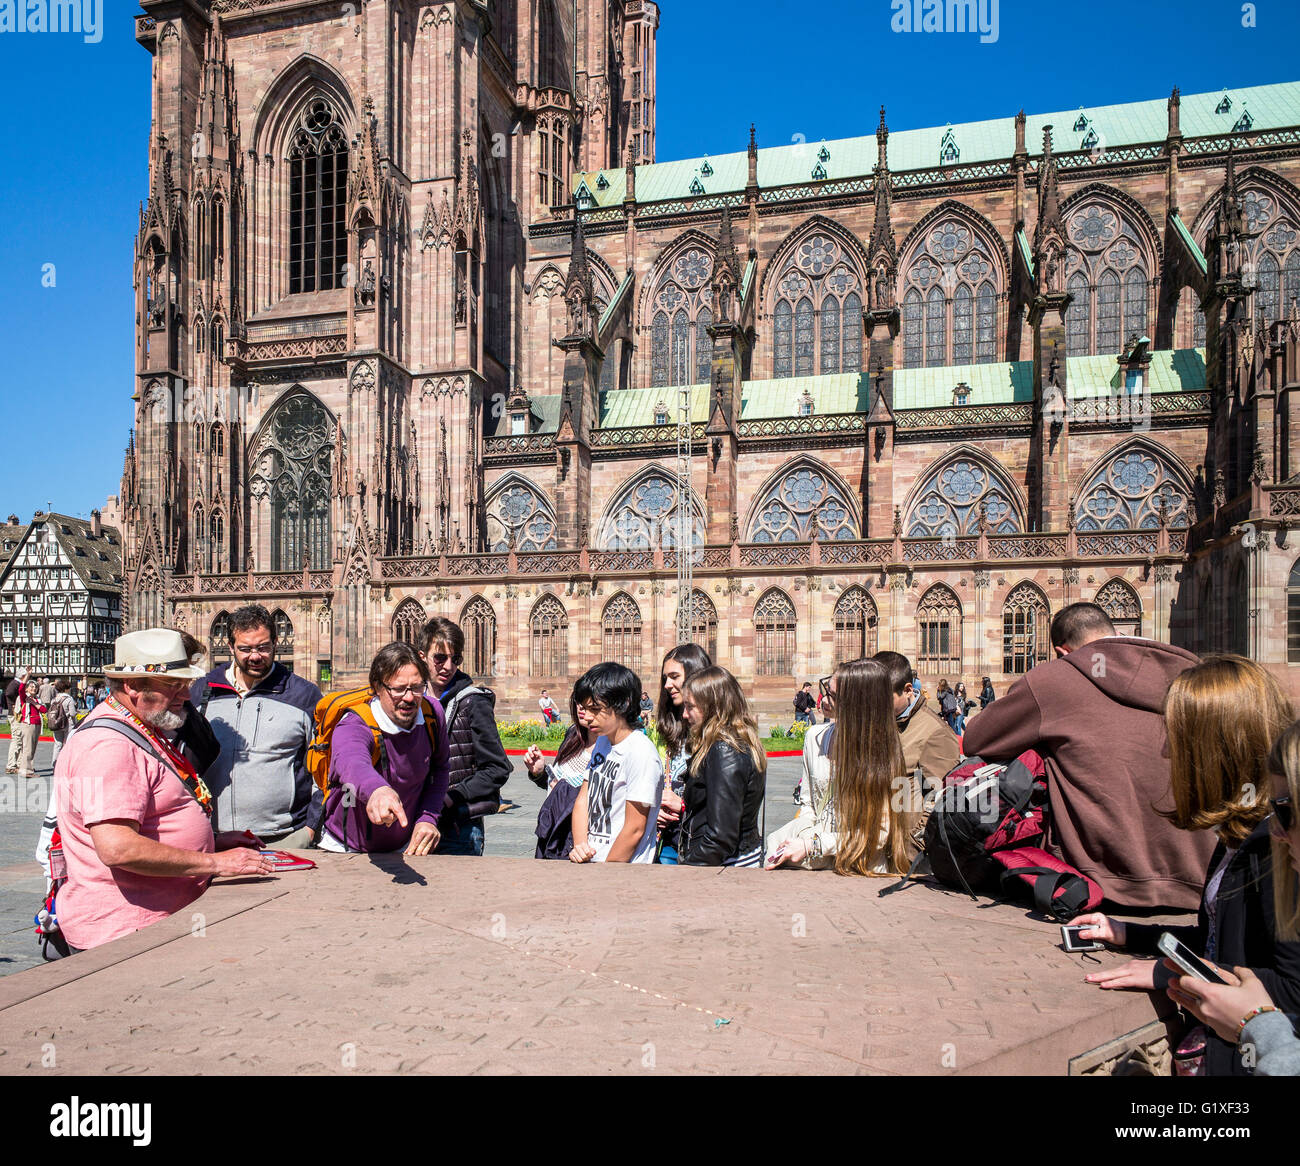 Teacher with students, Place du Château square and Notre-Dame gothic cathedral 14th century, Strasbourg, Alsace, - Stock Image